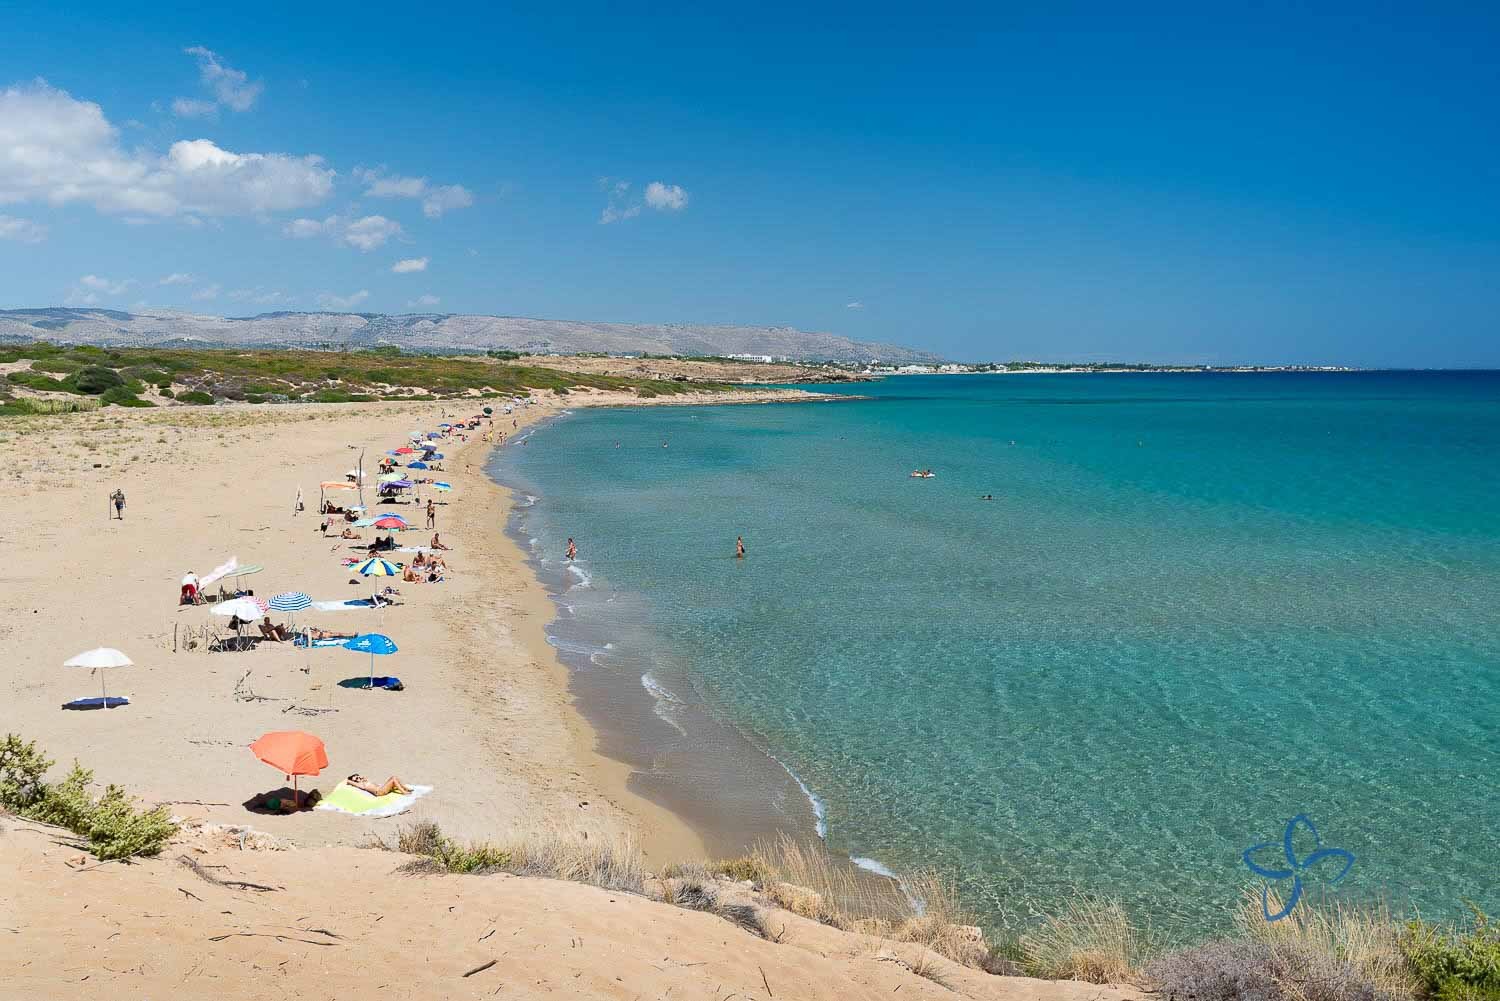 This Beautiful Beach Develops On The East Coast Of Sicily Inside Nature Reserve Vendicari Which Is Located Between Noto And Marzamemi